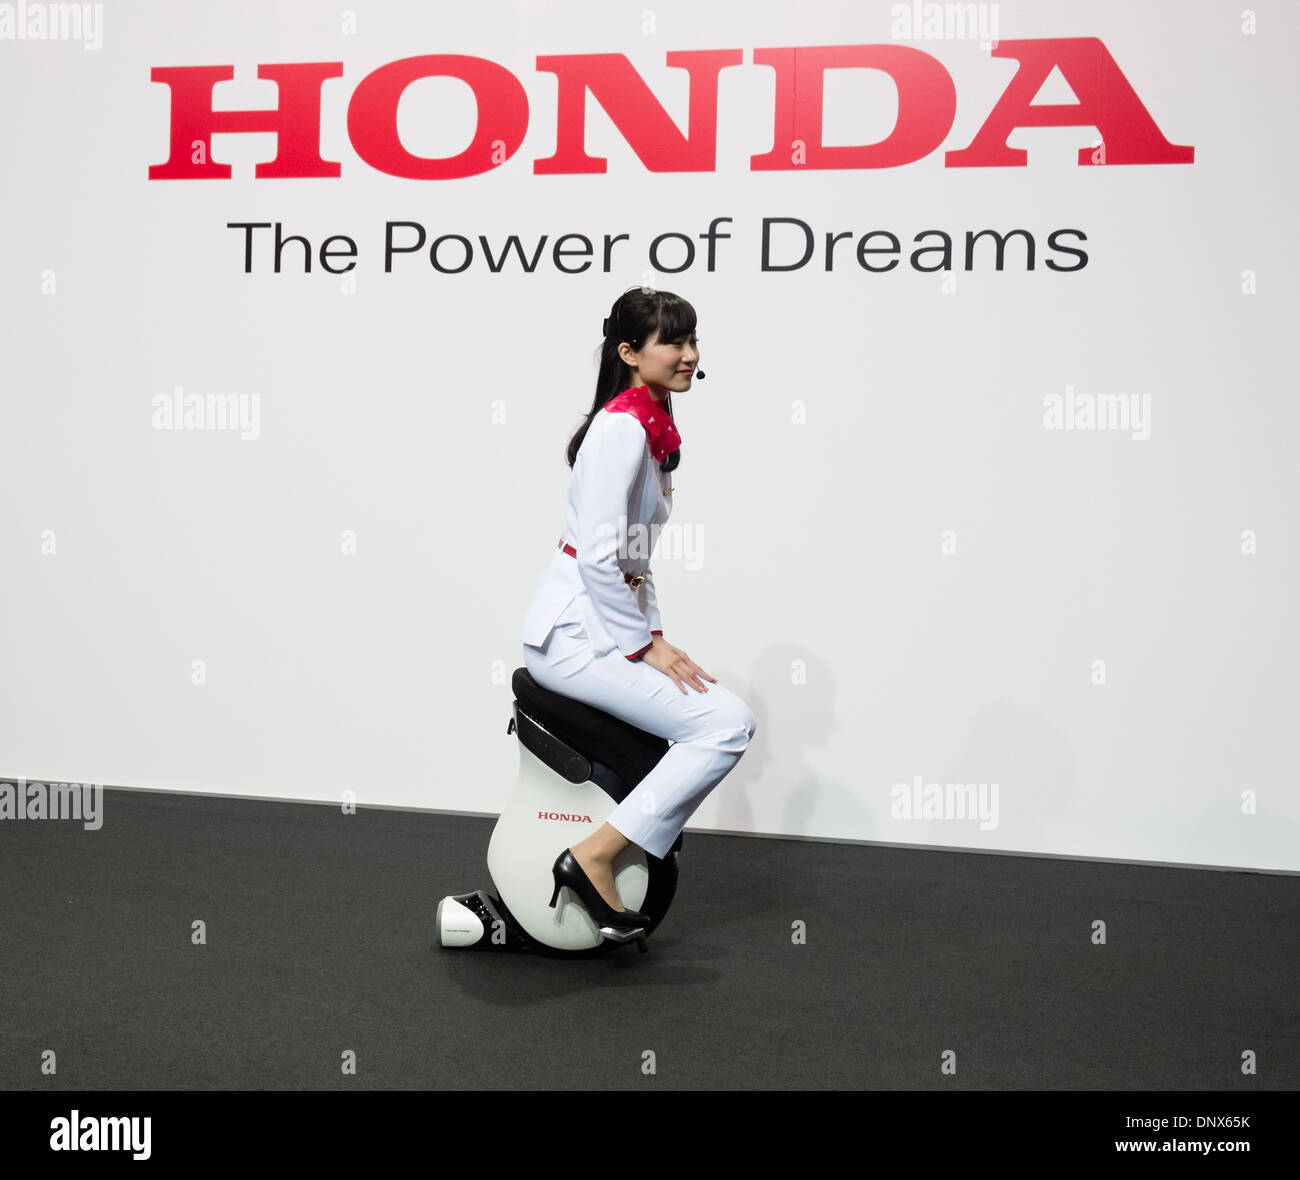 Honda Uni-CUB electric concept personal Mobility Device on display at Tokyo Motor Show 2013 in Japan - Stock Image